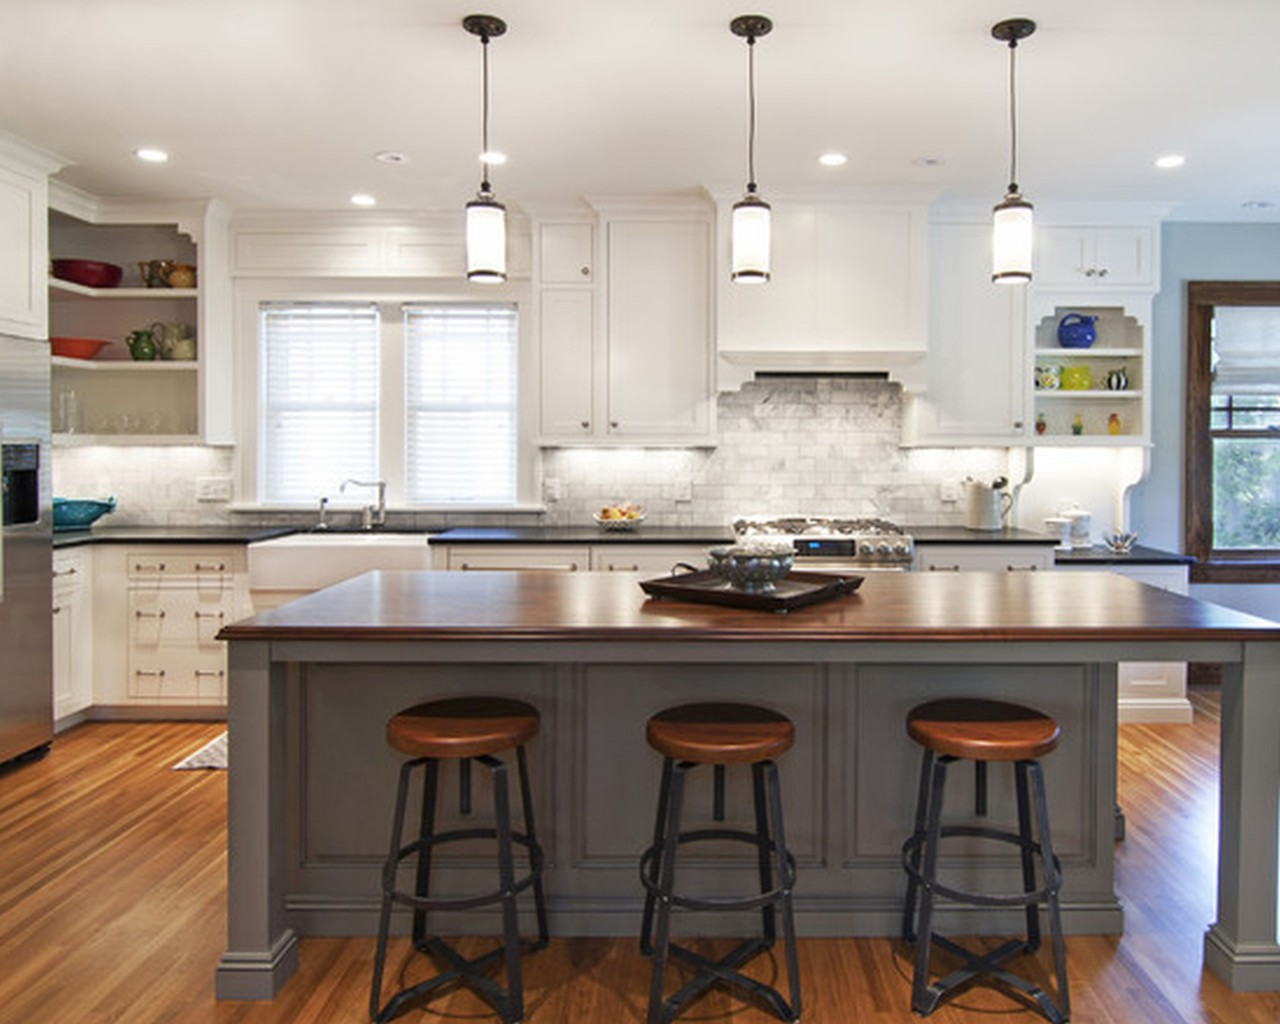 Gray Kitchen Island with Wooden Countertop